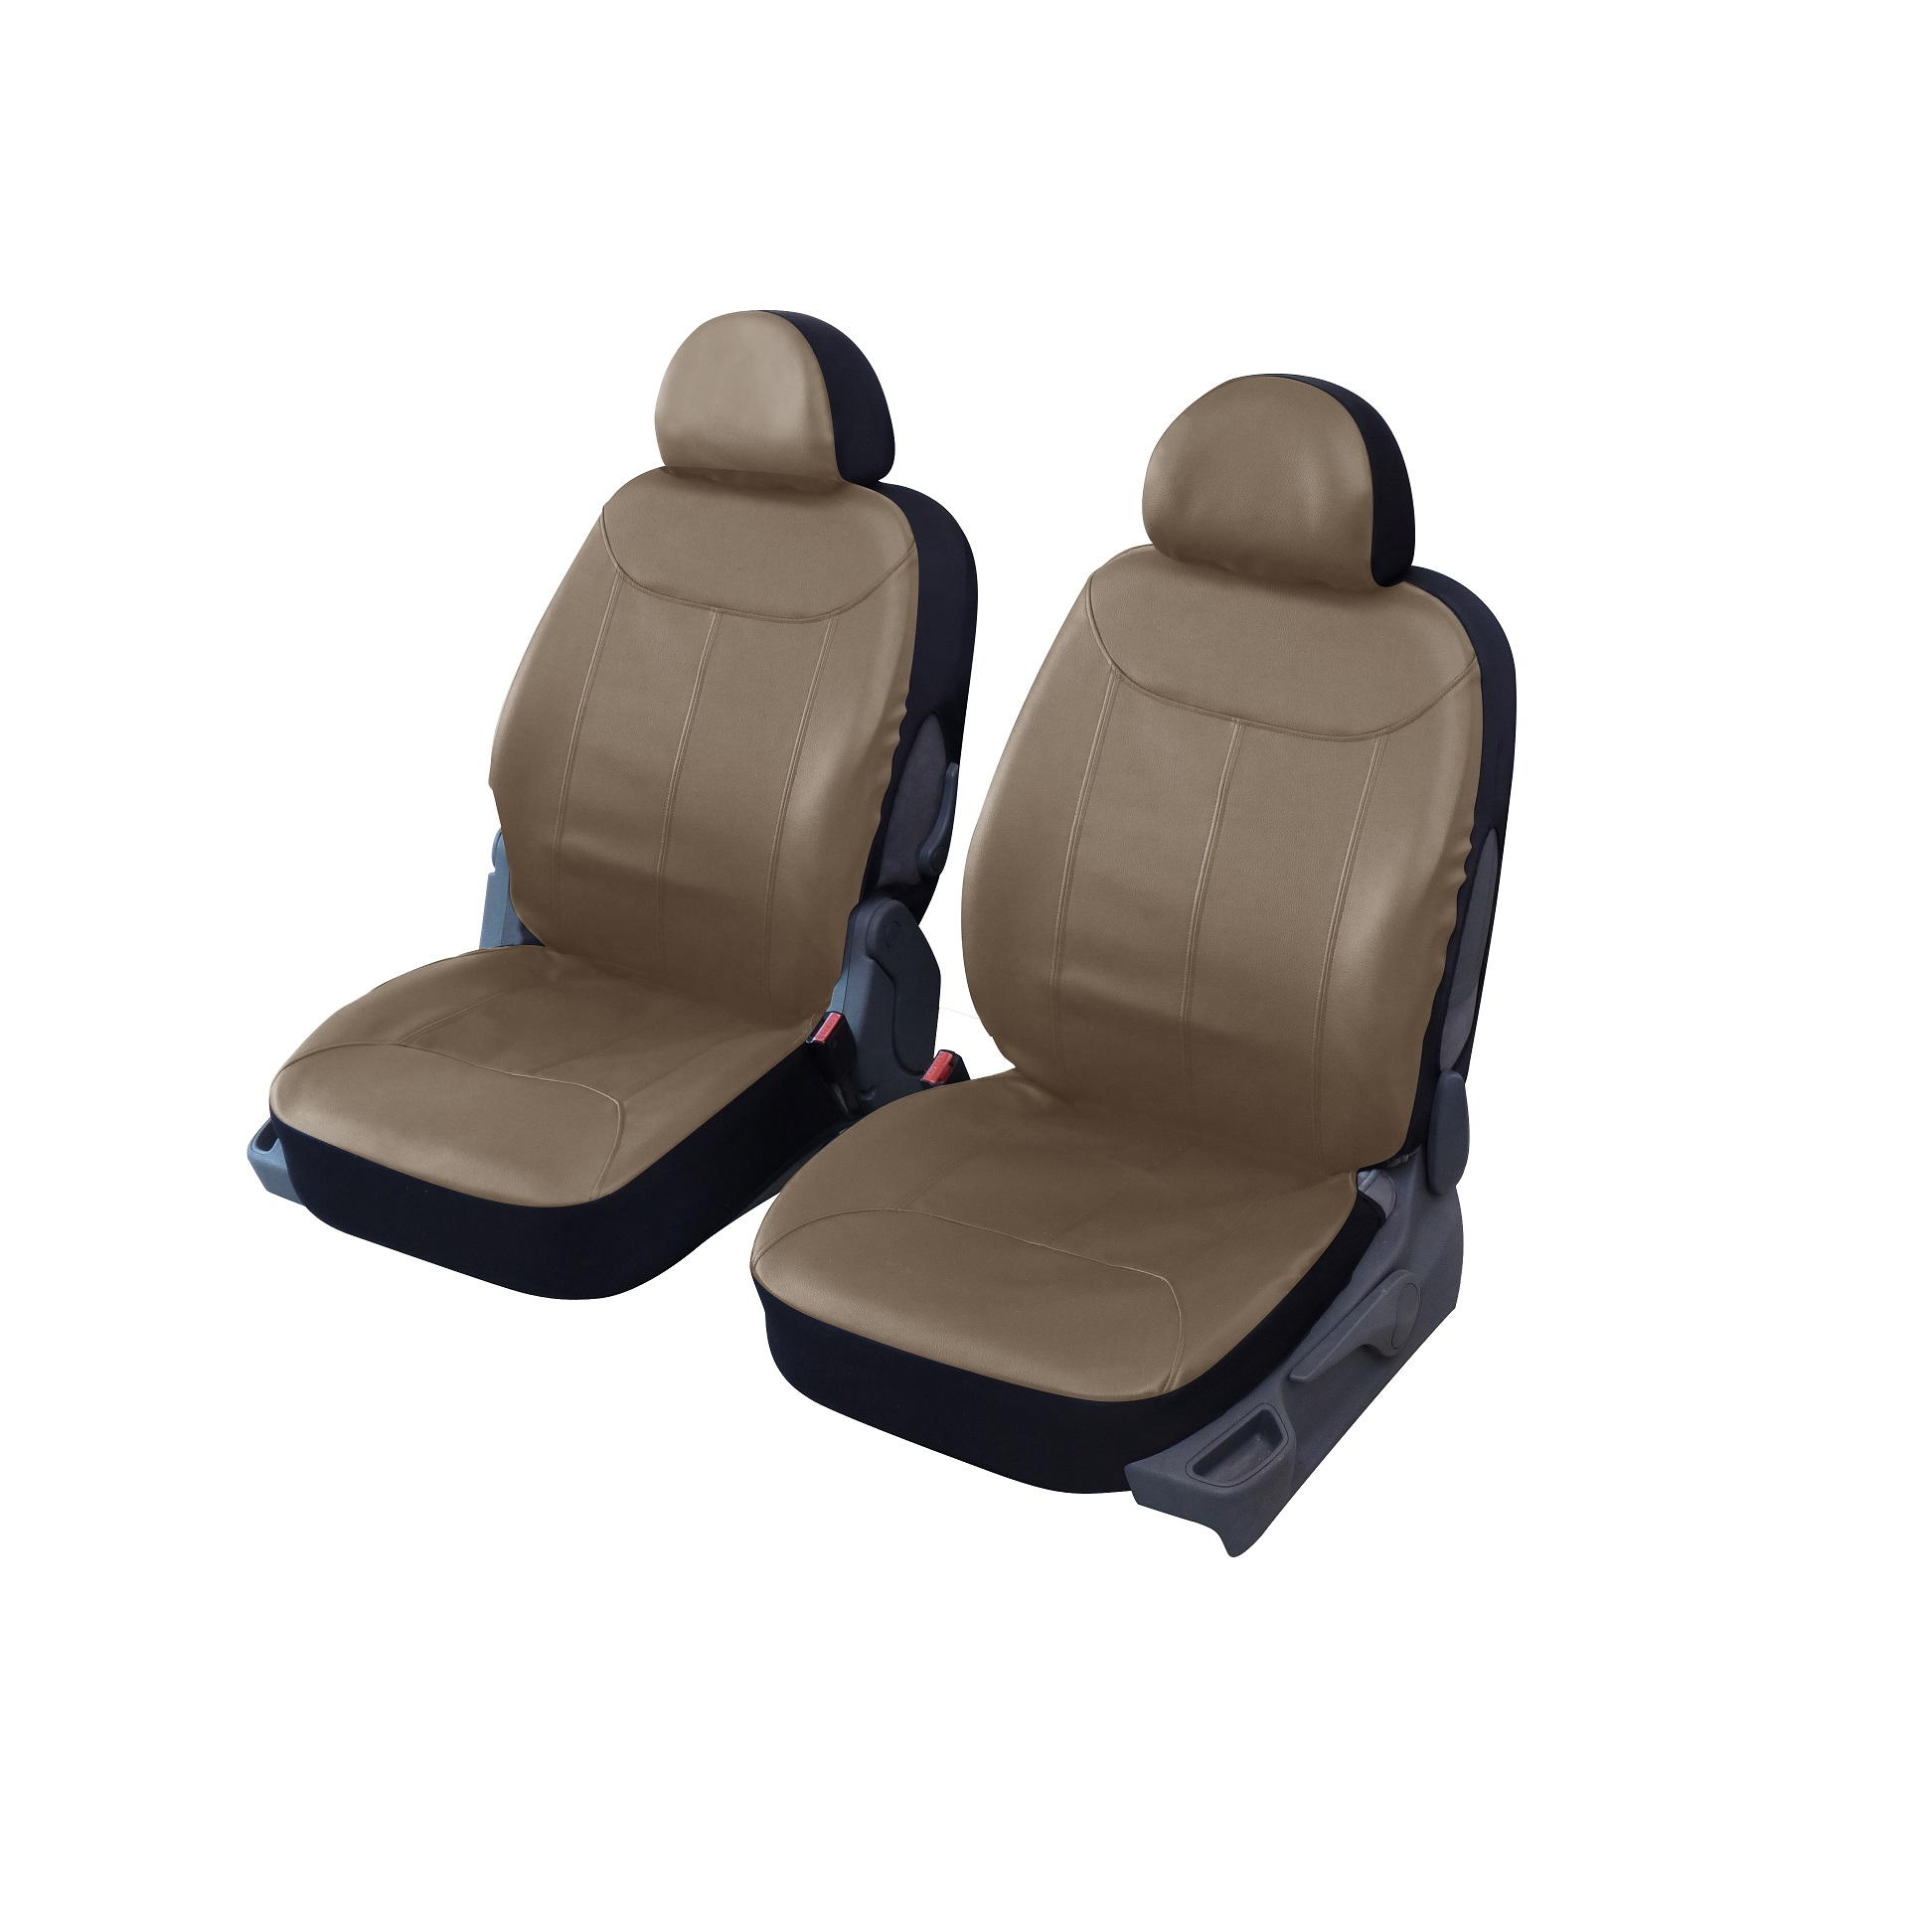 Housse de si ge auto universelle simili cuir beige texas 2 for Housse cuir siege auto